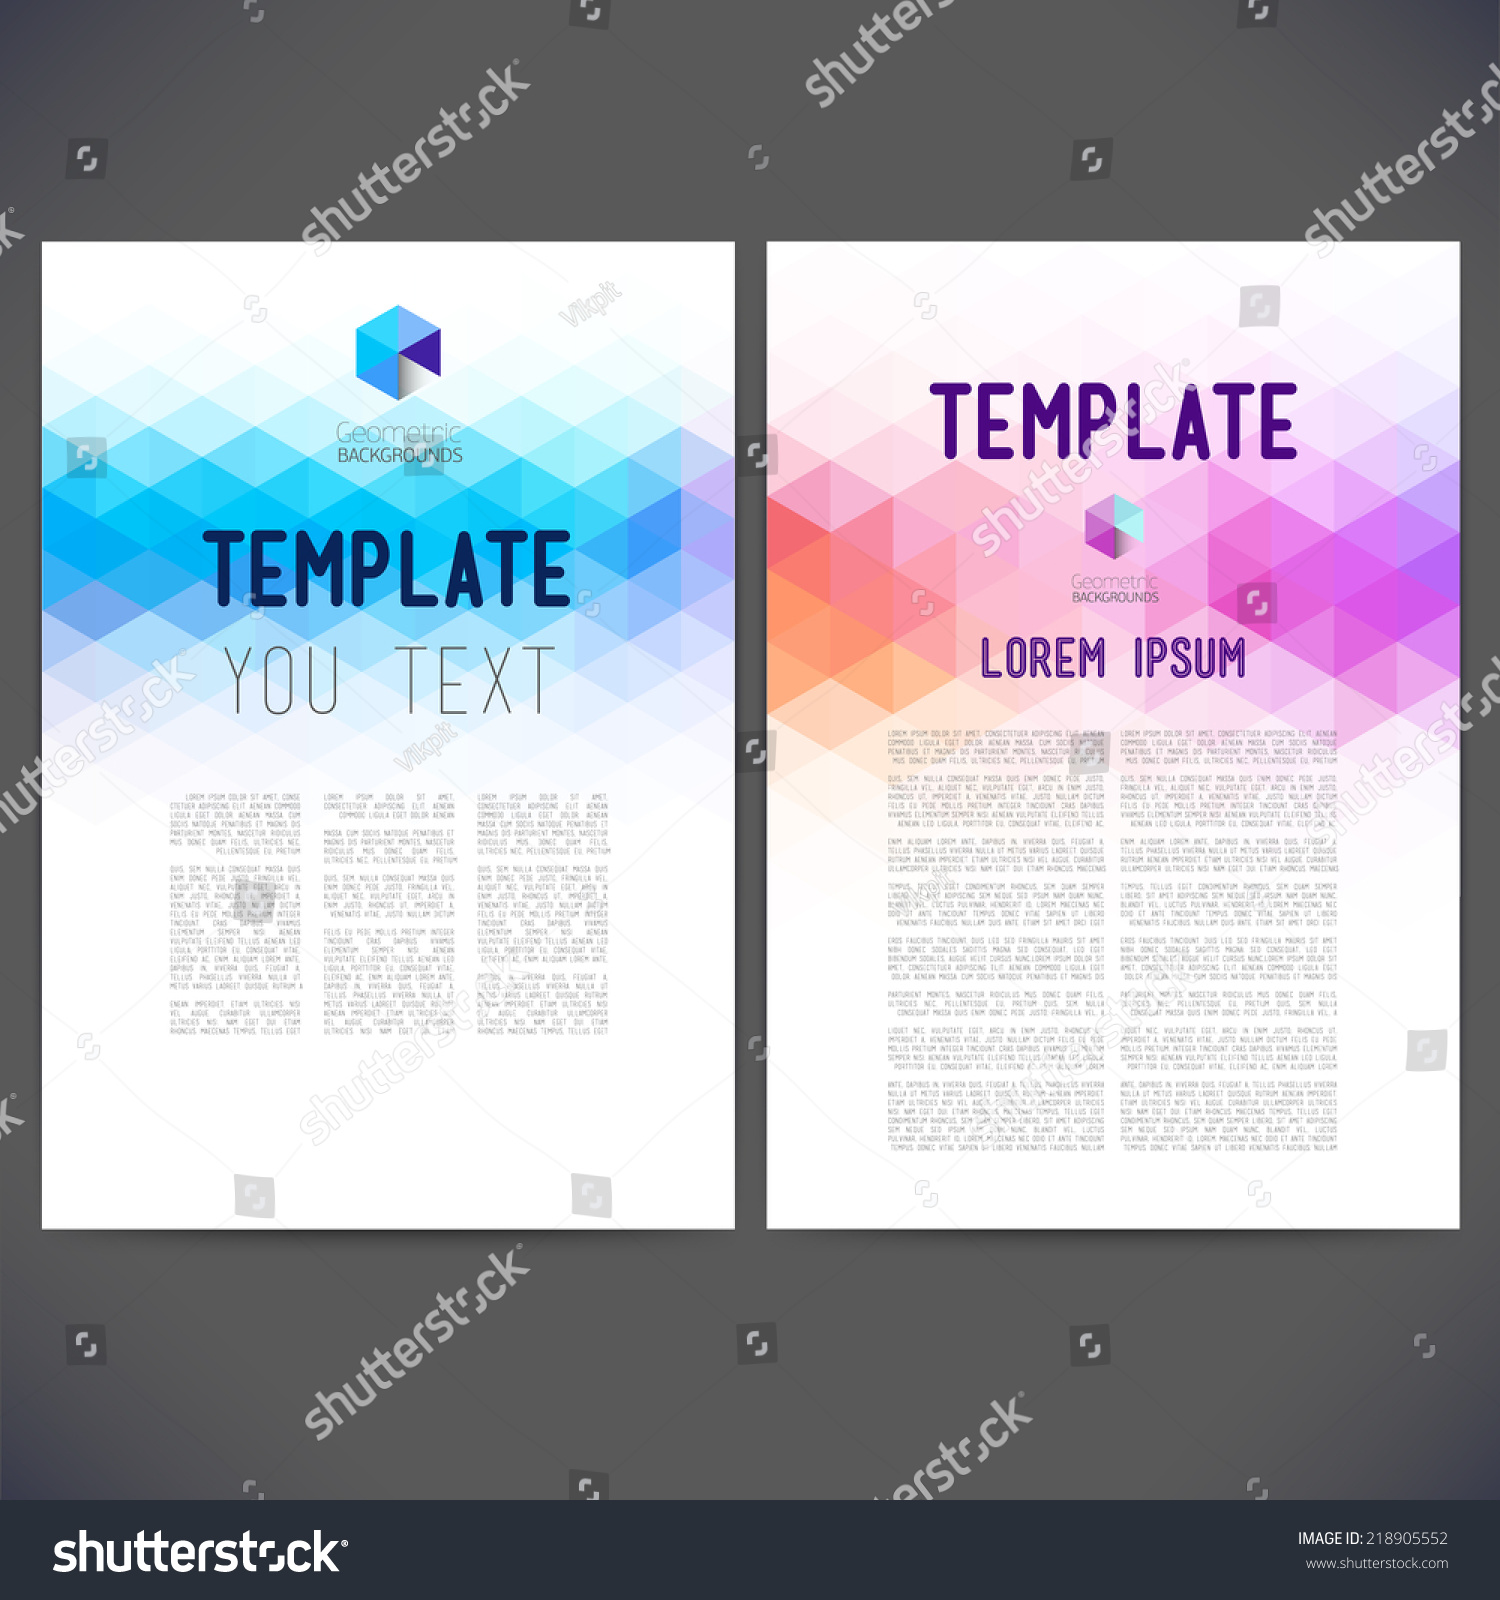 Web Flyer Template Stock Vector Abstract Vector Template Design Brochure Web  Sites Page Leaflet With Colorful